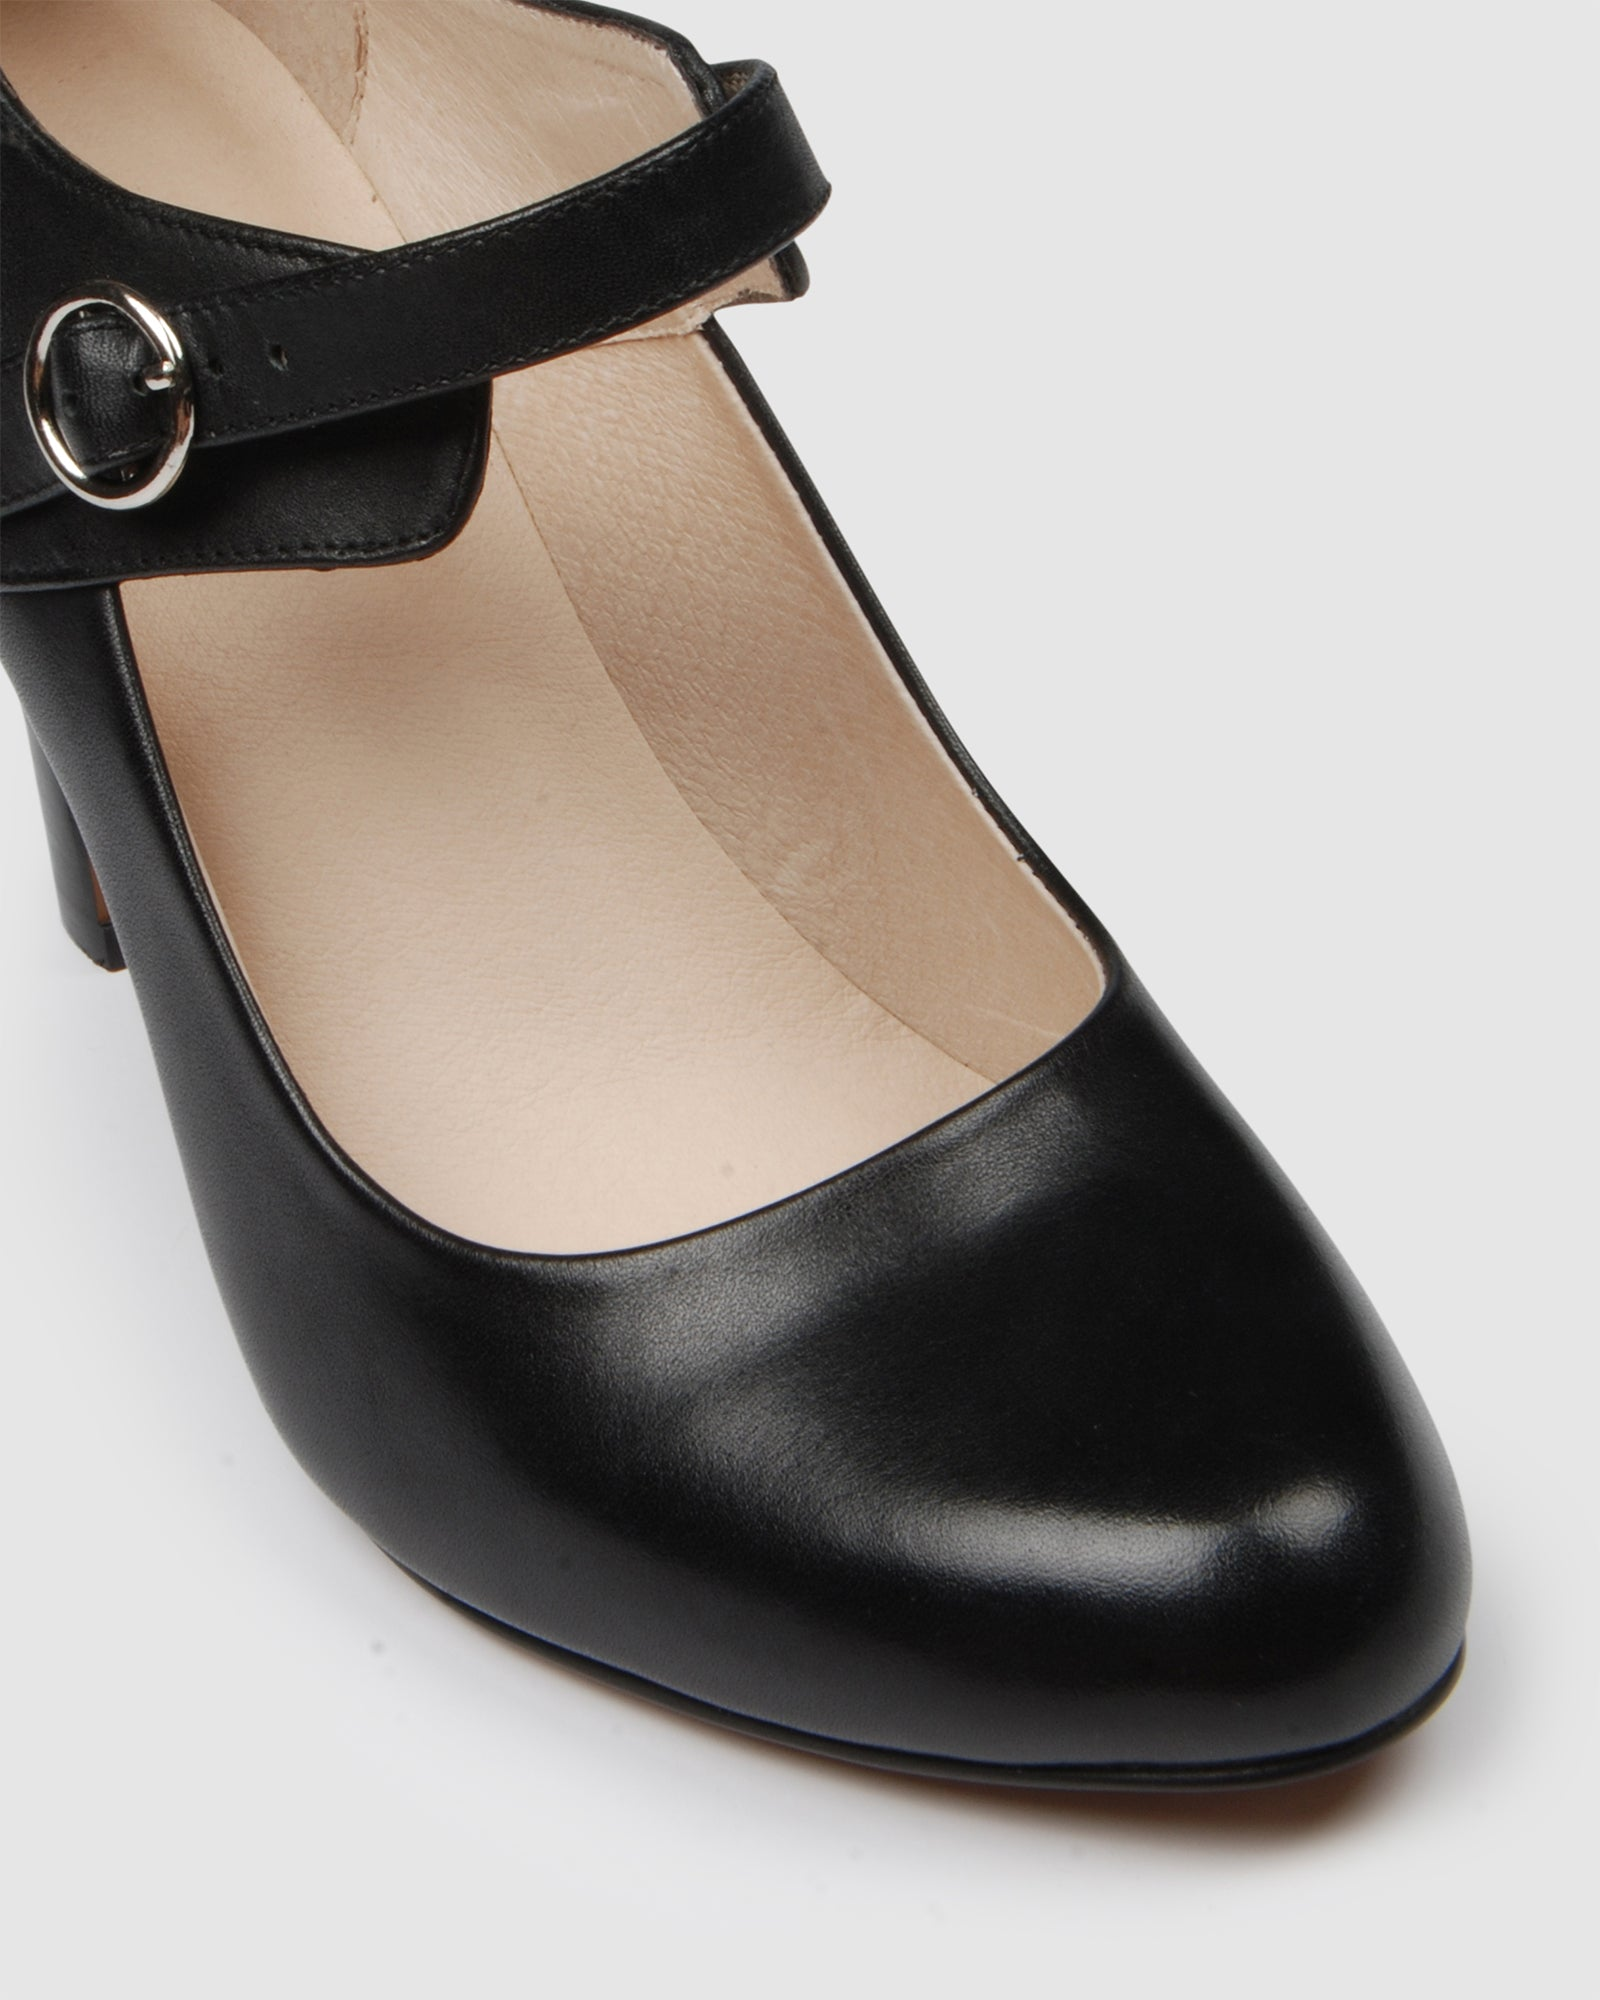 QUAINT HIGH HEELS BLACK LEATHER